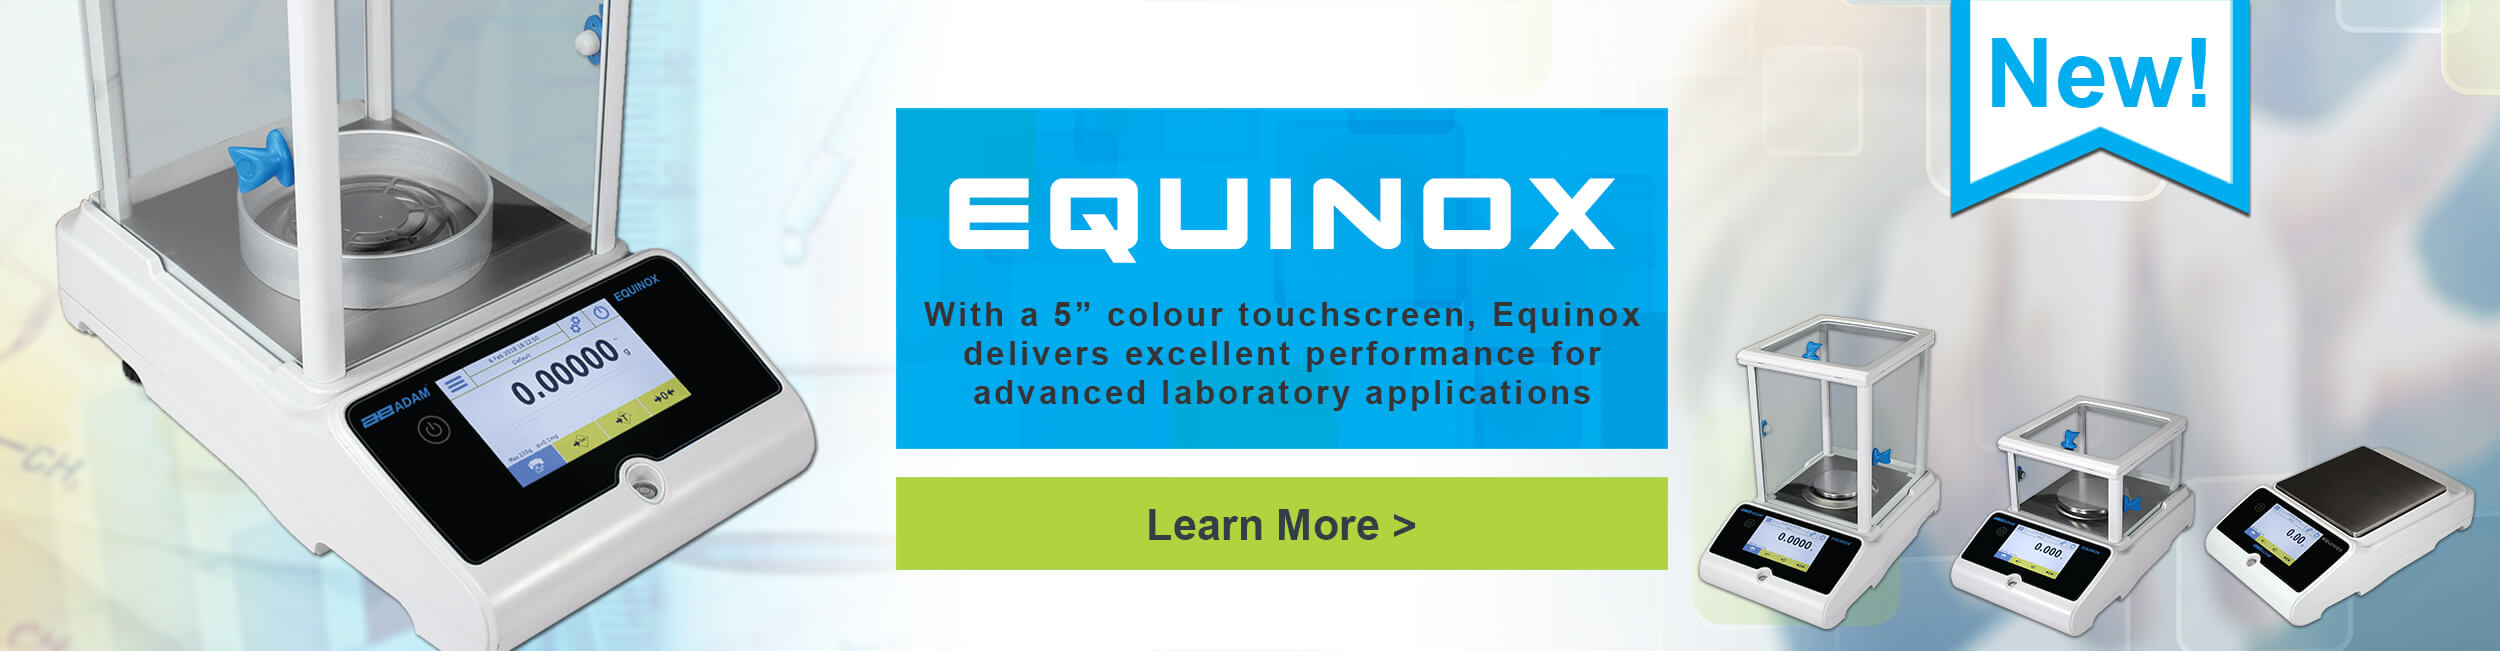 "Equinox - With a 5"" color touchscreen, Equinox delivers excellent performance for advanced laboratory applications"